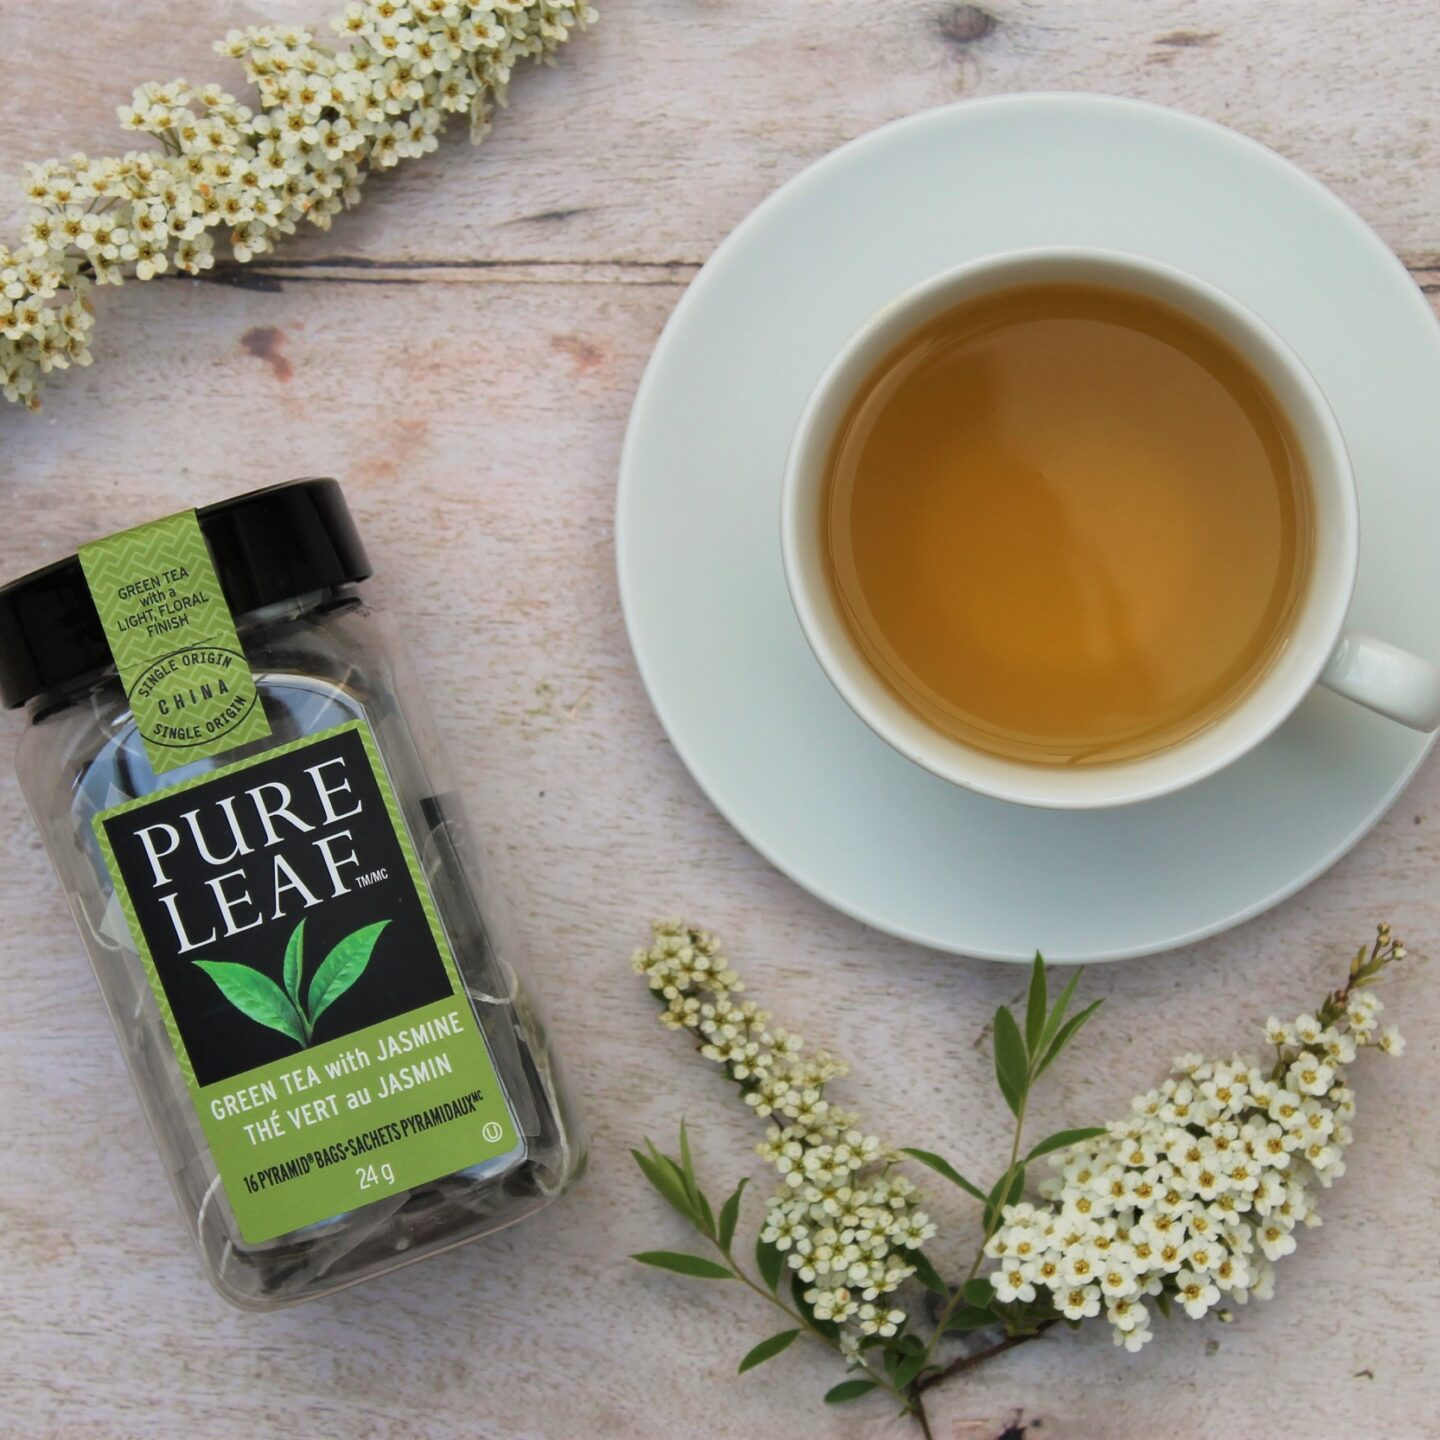 Pure Leaf Green Tea with Jasmine Tea Review